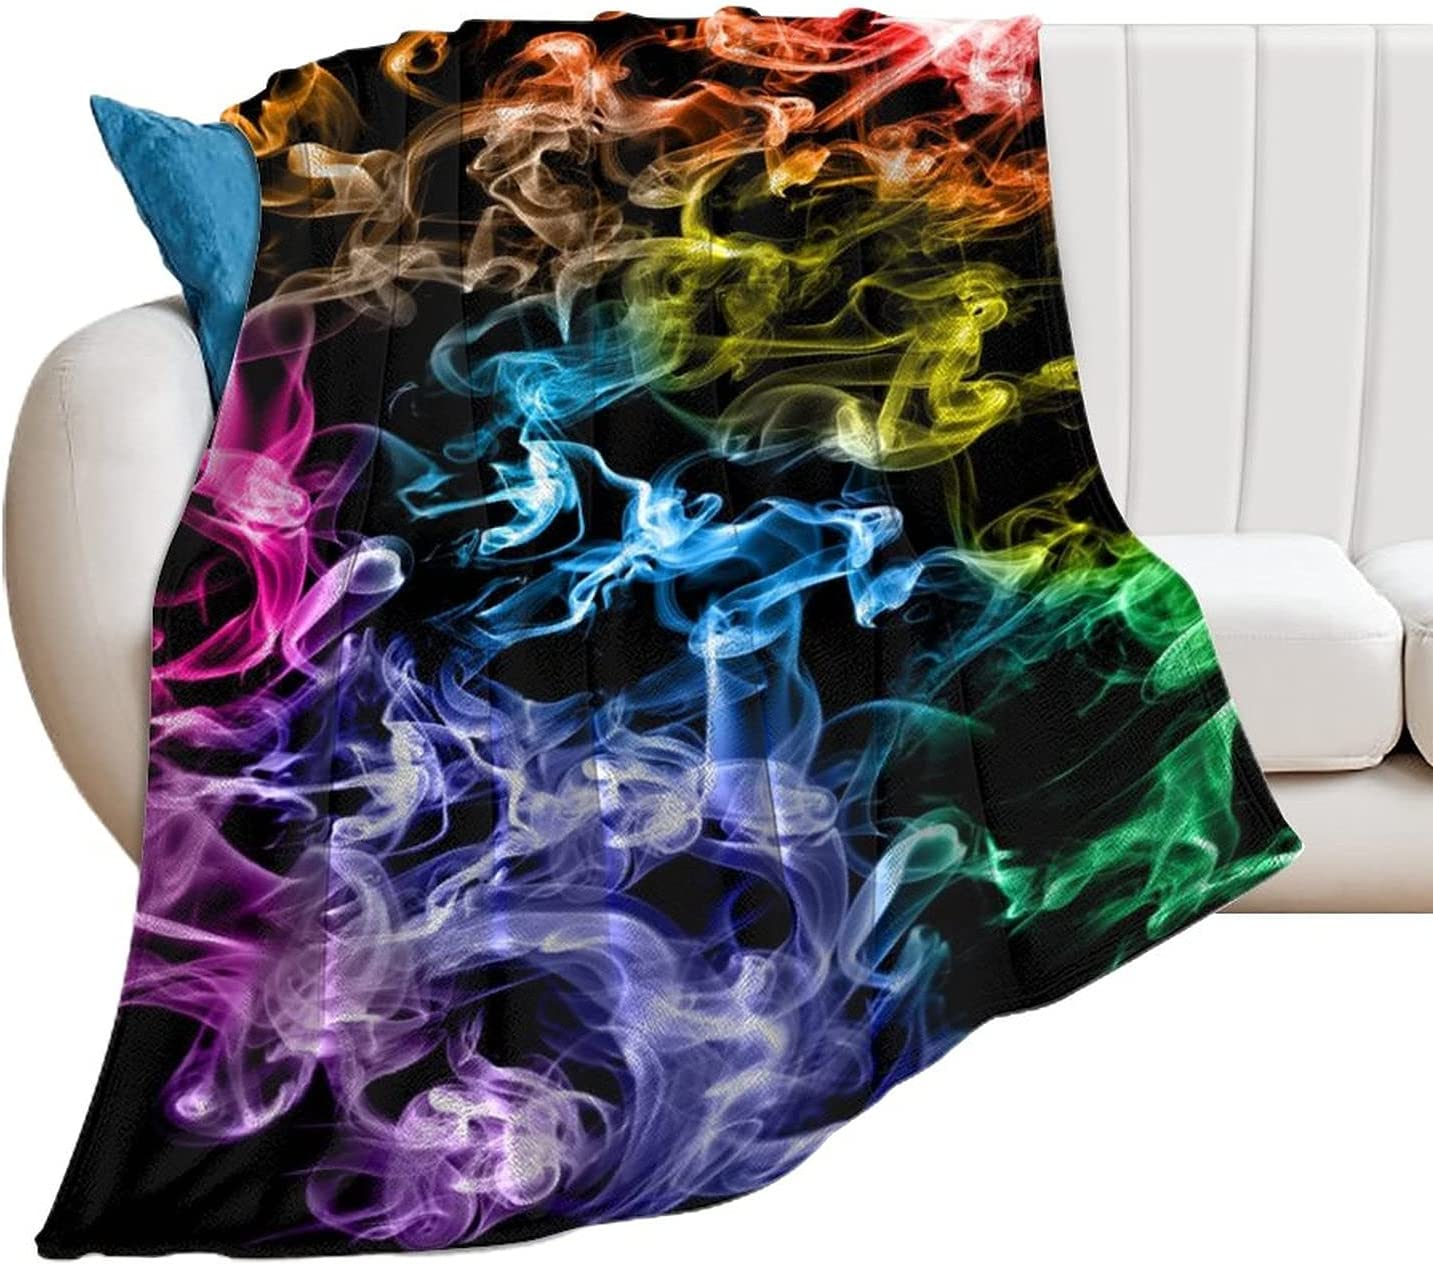 Colored Smoke Blanket Flannel 40% Spasm price OFF Cheap Sale Super Soft Bed Bedroom Decorative